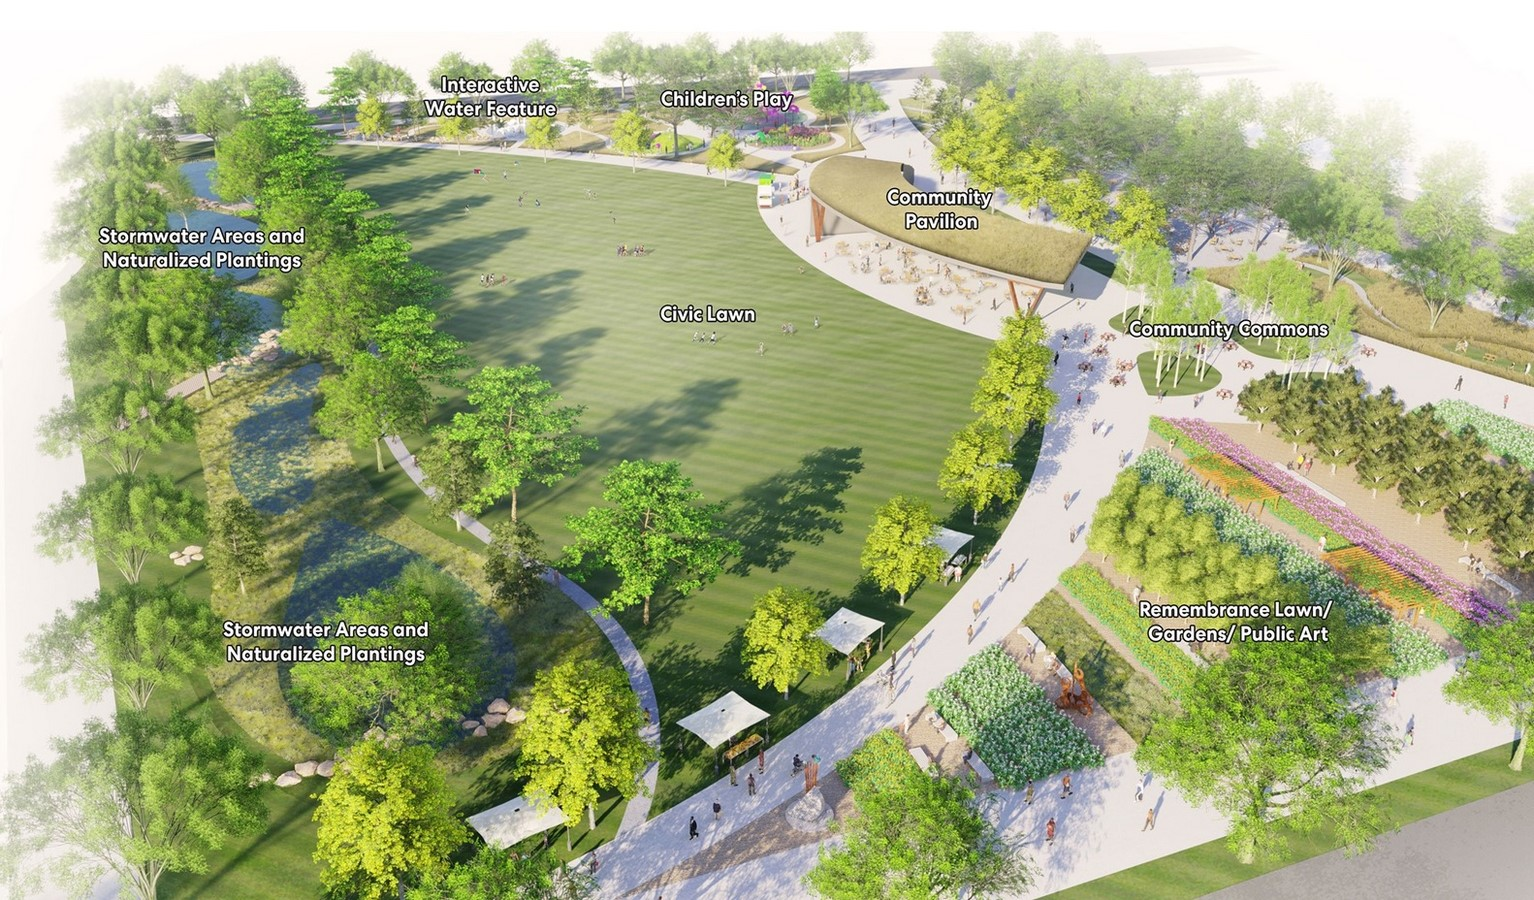 New Transformation of Fair Park in Dallas to be designed by Studio-MLA - Sheet5